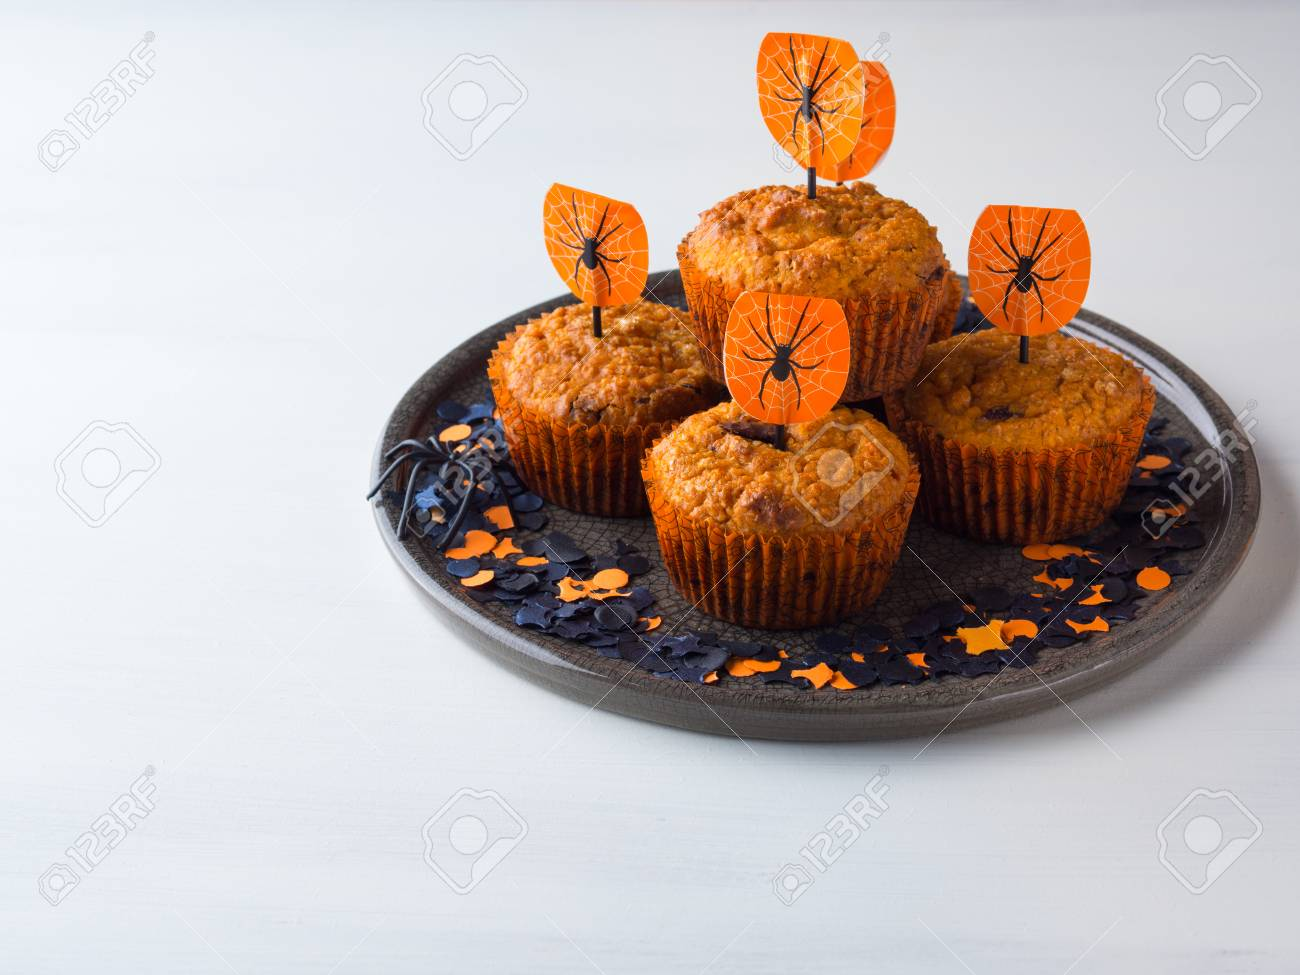 Pumpkin Muffins With Chocolate Chips For Halloween Kids Party